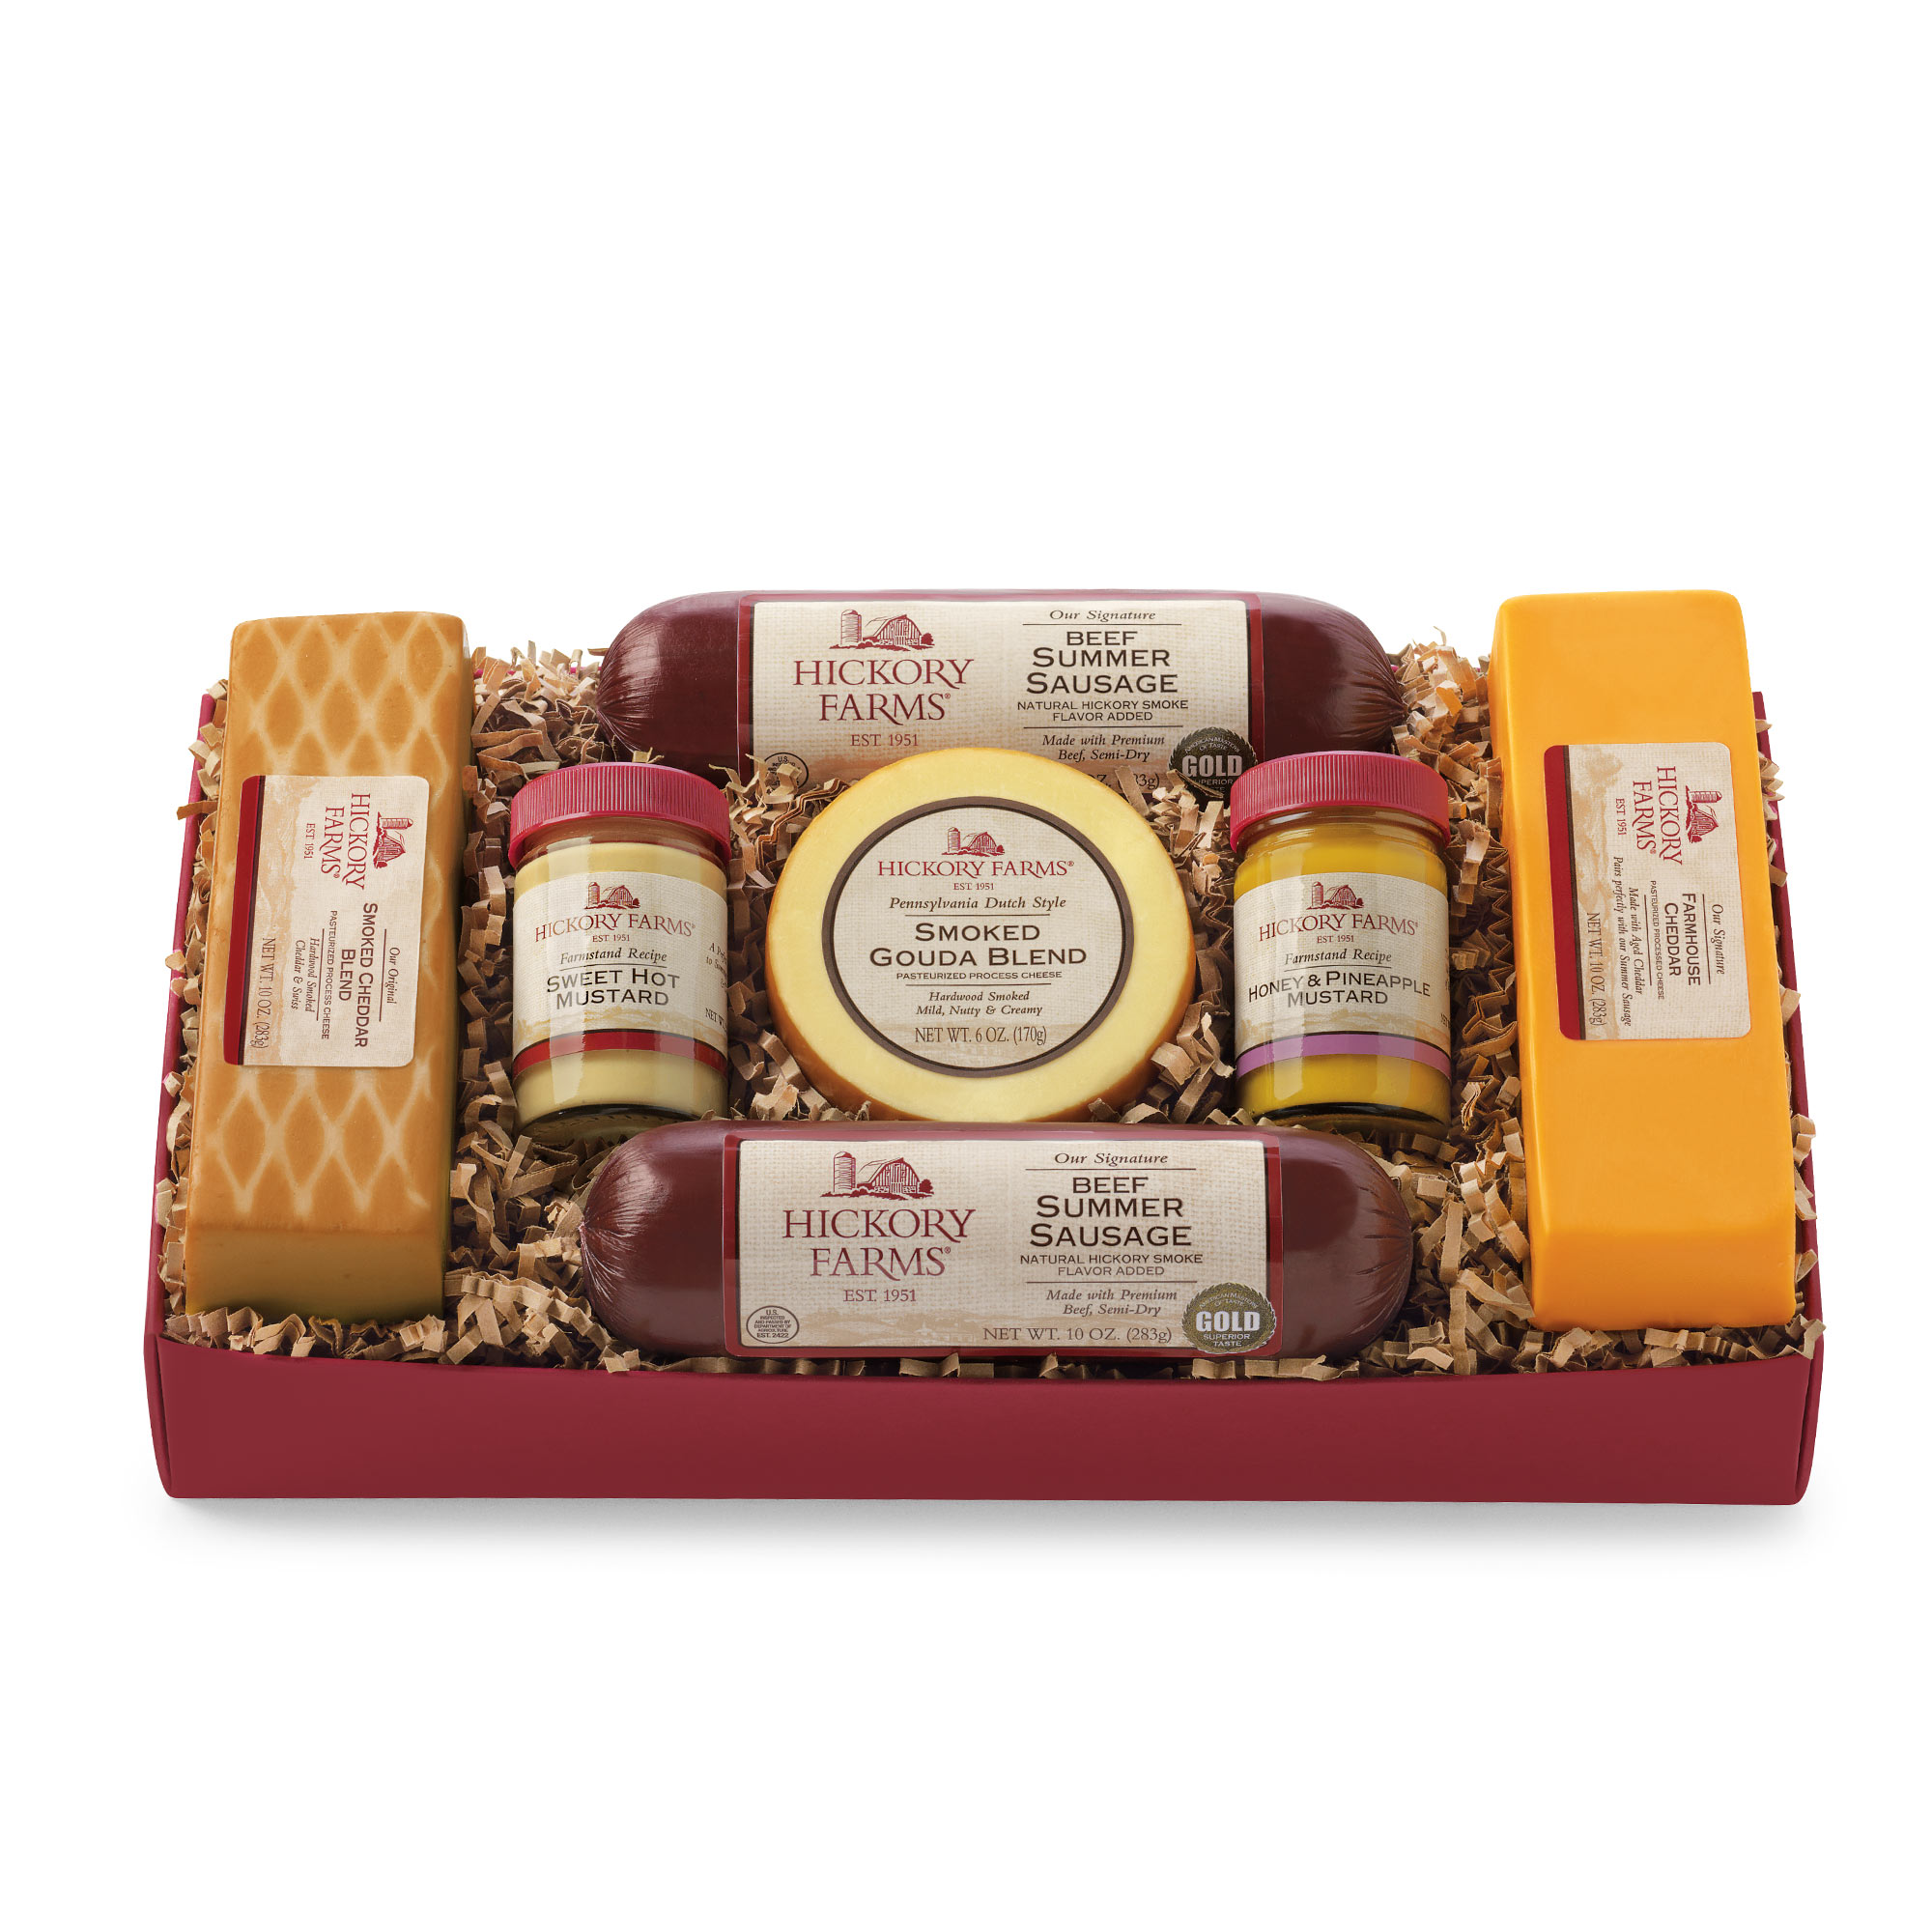 Summer sausage and cheese gift box hickory farms hickory farms summer sausage and cheese gift box negle Image collections